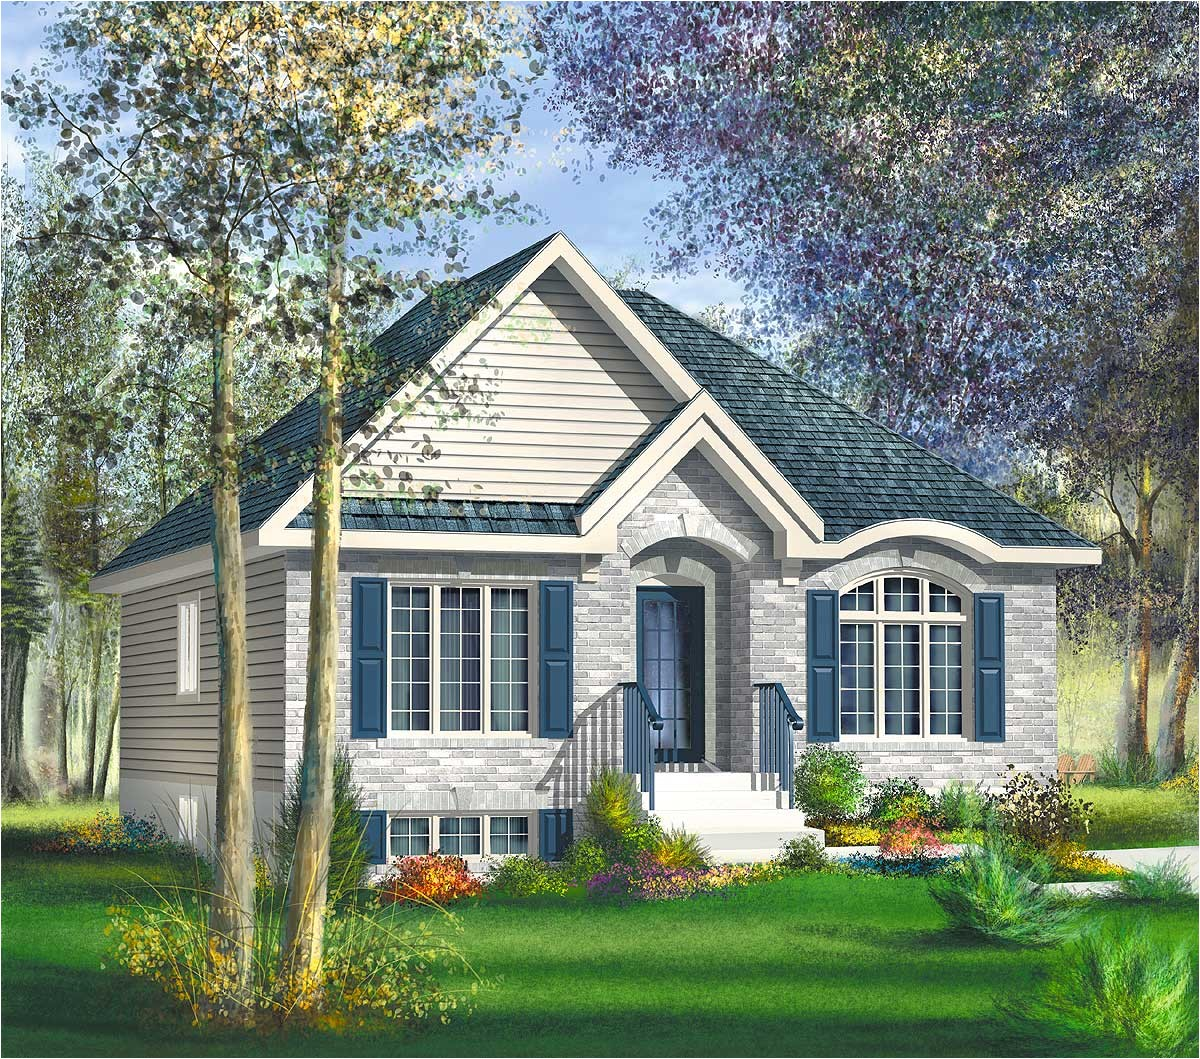 Cozy Home Plans Cozy Bungalow Cottage 80401pm Architectural Designs